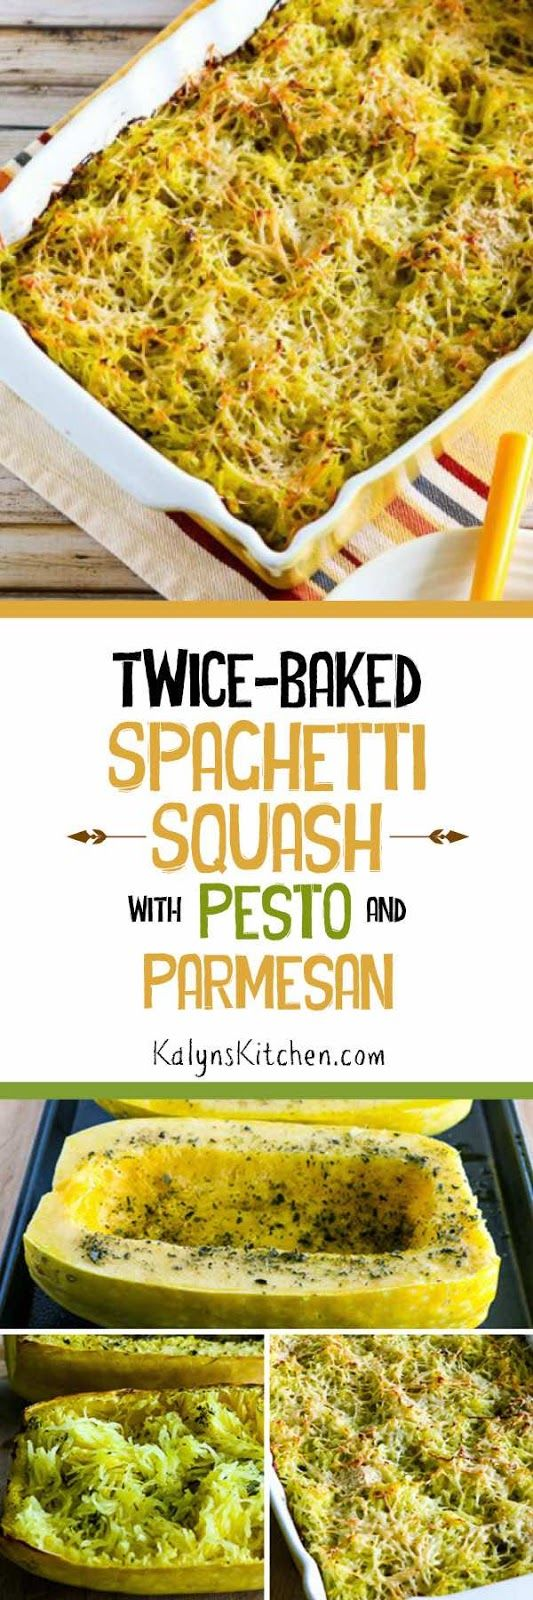 Twice-Baked Spaghetti Squash Recipe with Pesto and Parmesan could make a perfect side dish for people who are watching carbs. And this spaghetti squash dish is low-carb, Keto, low-glycemic, gluten-fre